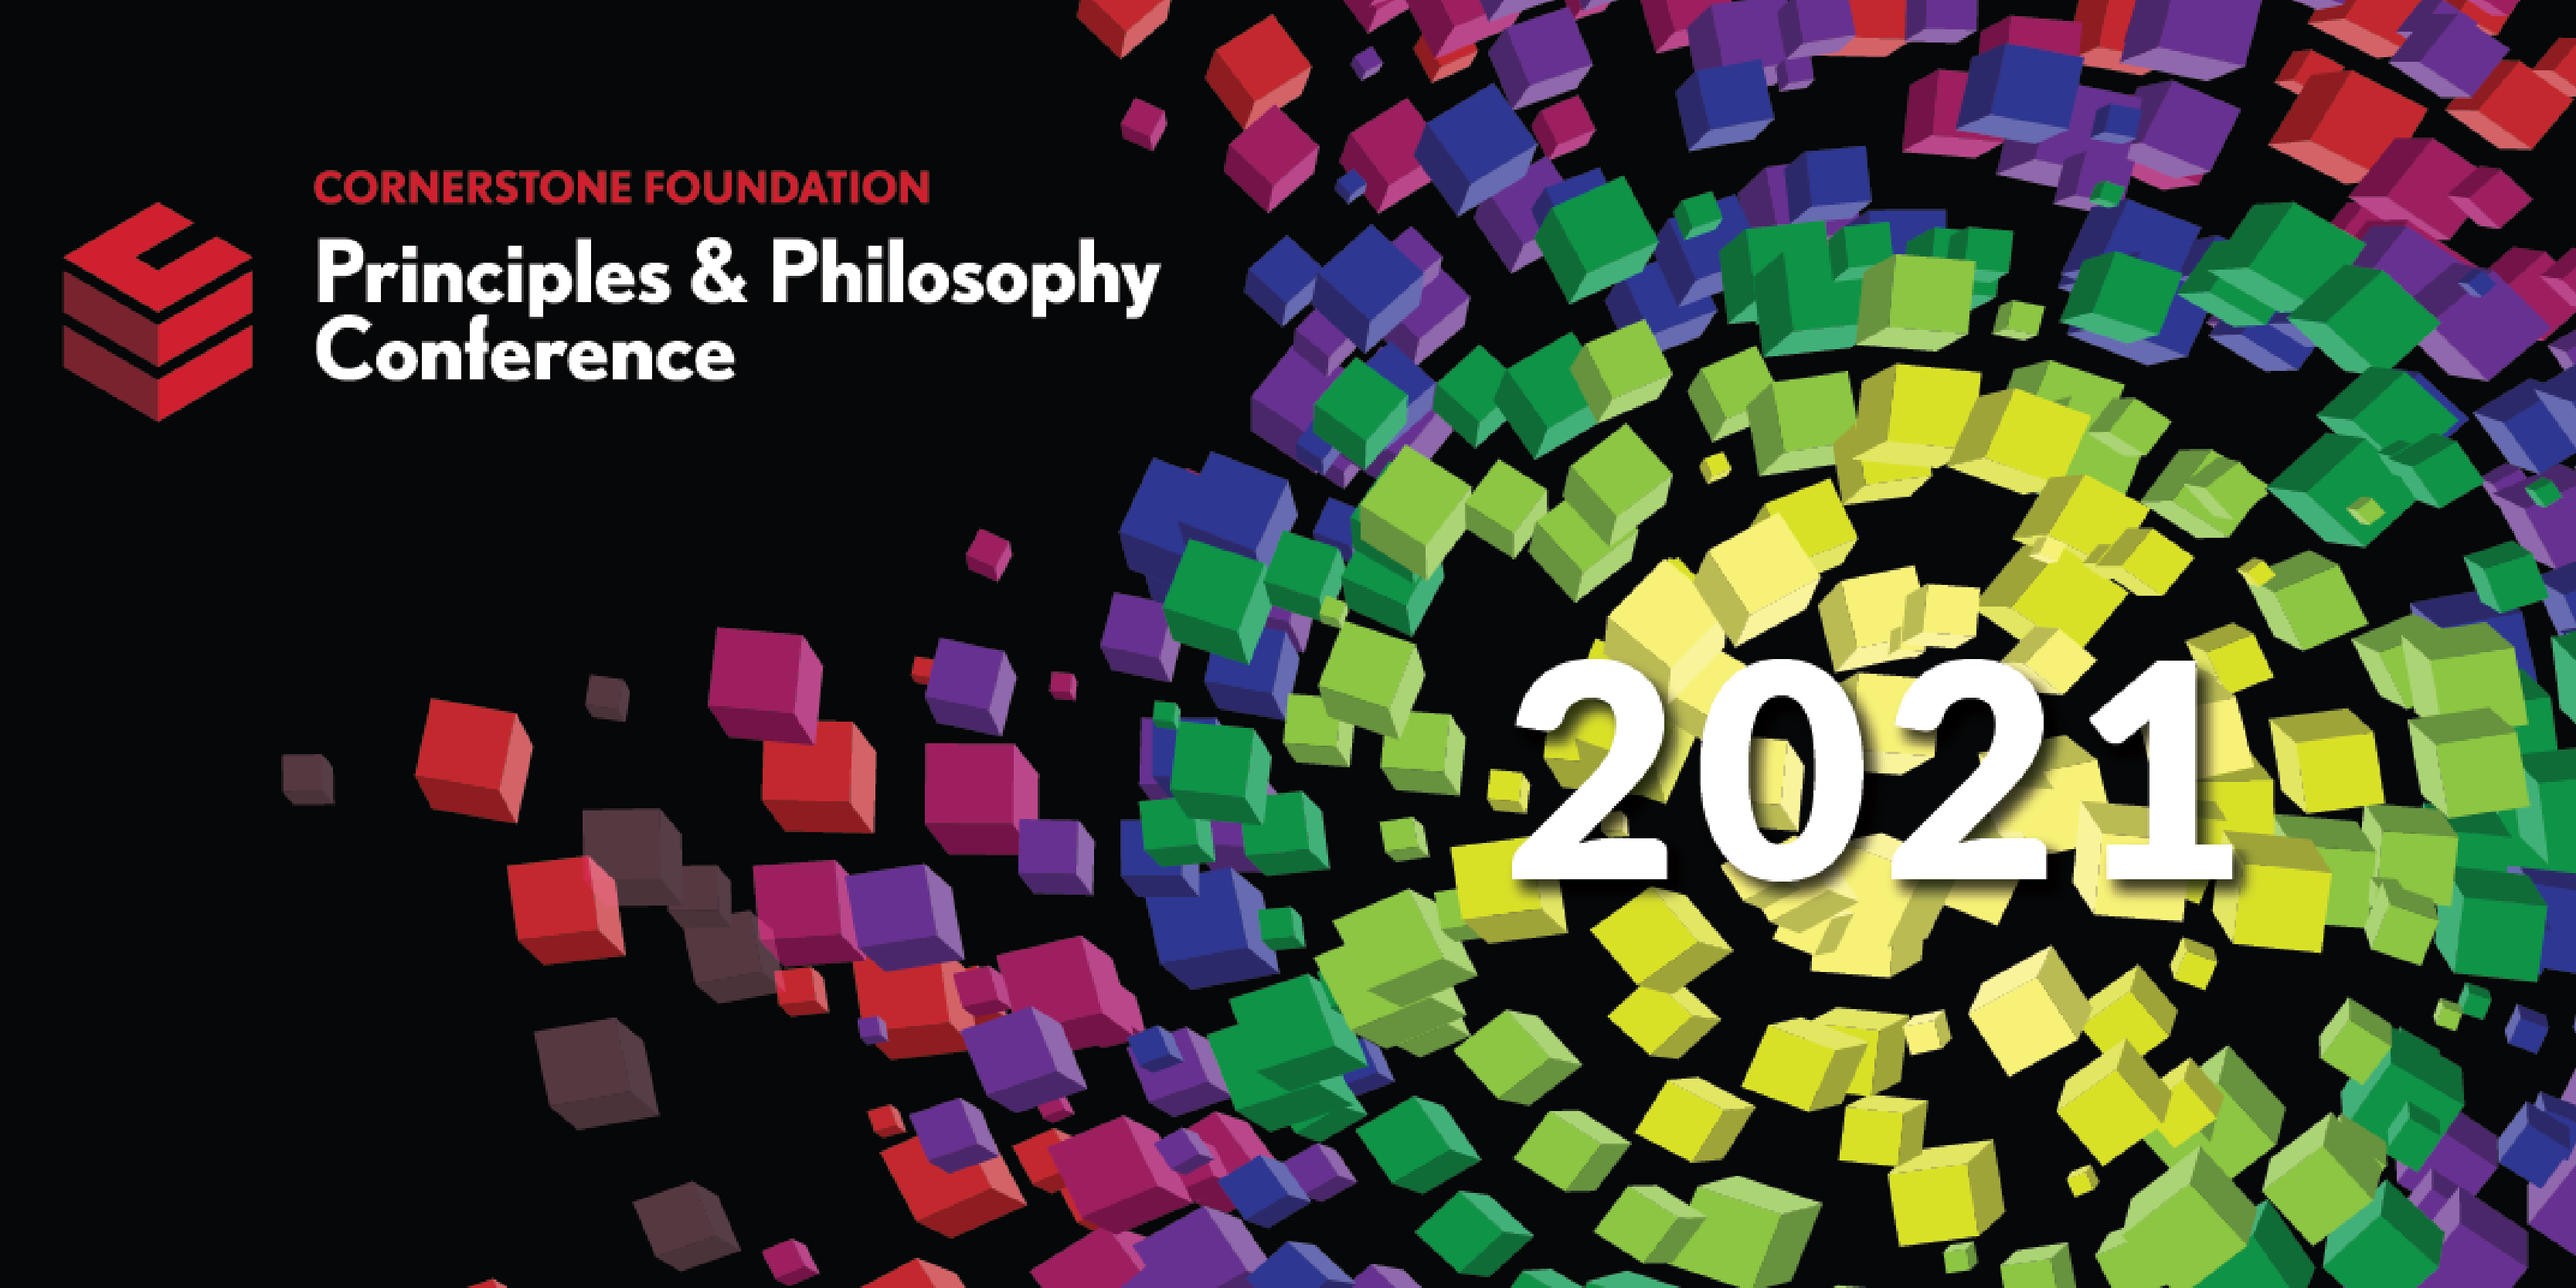 Principles & Philosophy Conference